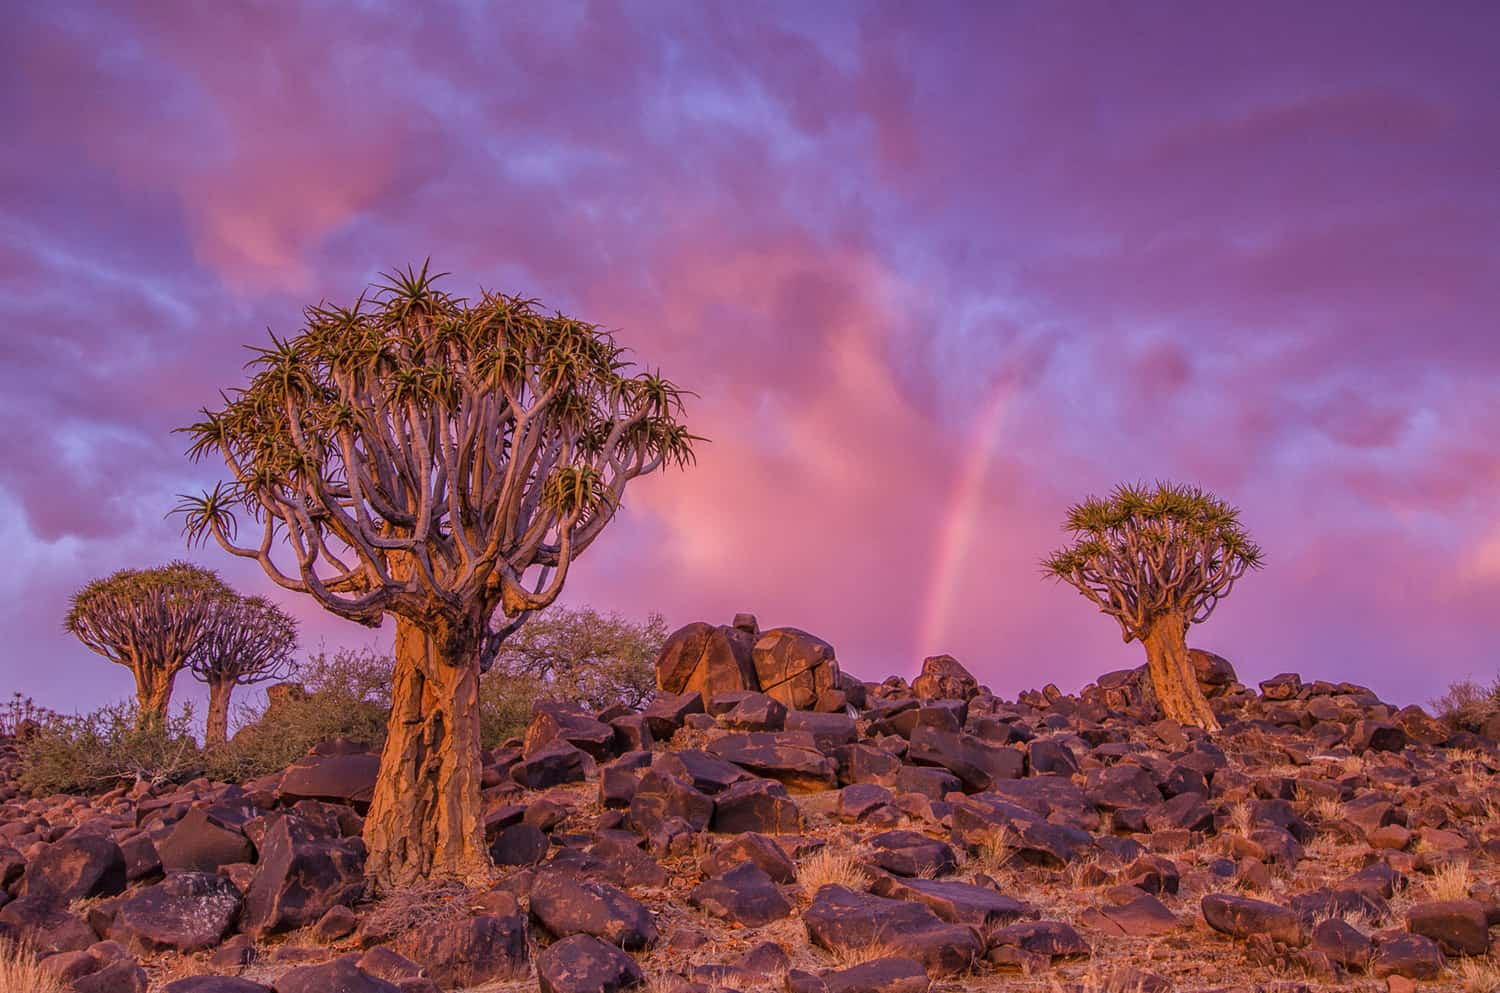 Namibia Landscape Photography7 - Capturing Space: Our Photography Workshop in Namibia